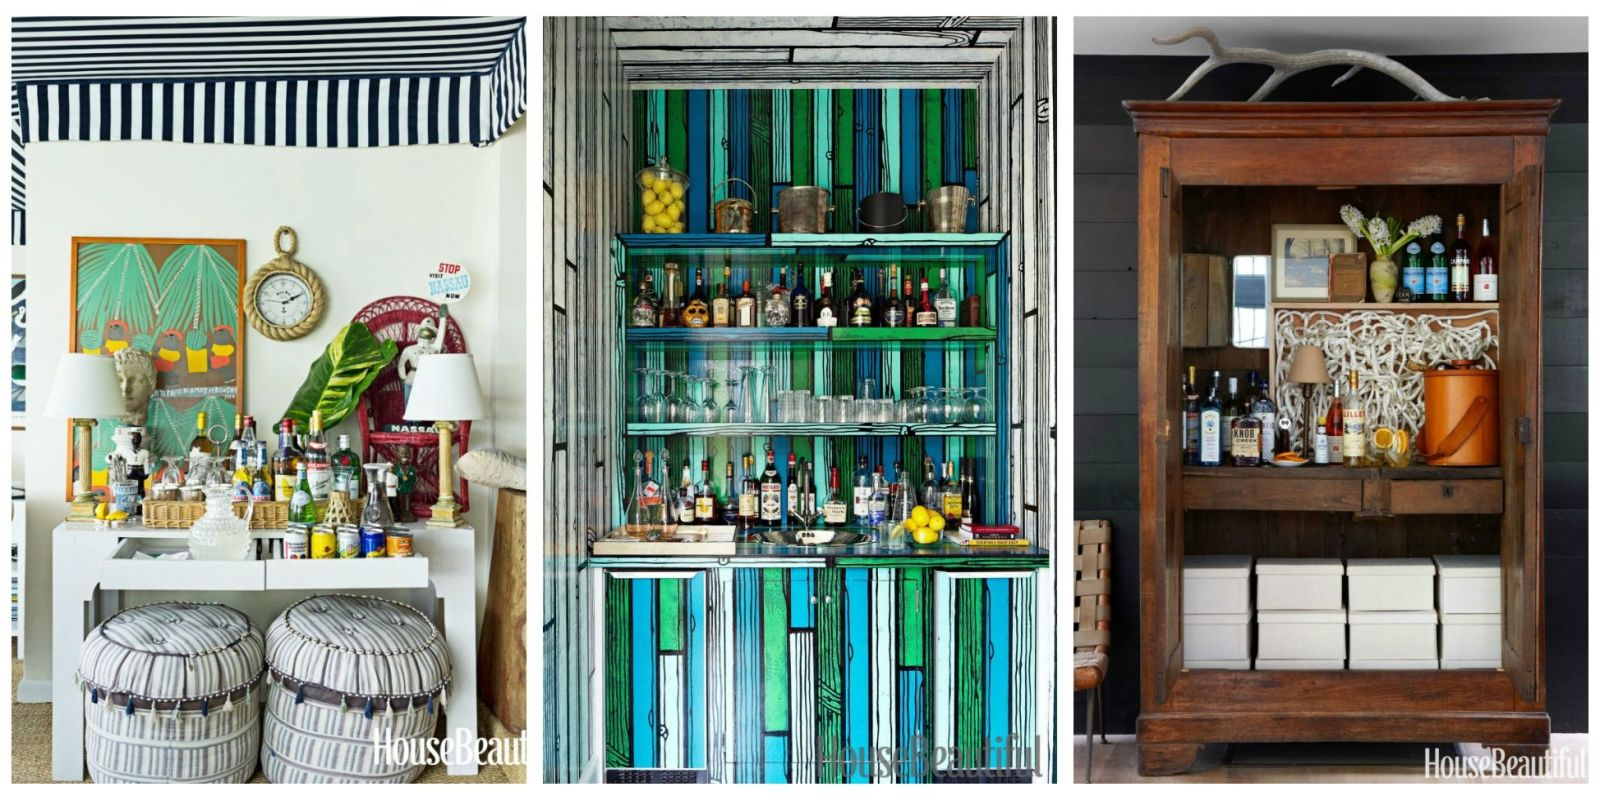 30 home bar design ideas furniture for home bars - Bar Design Ideas For Home